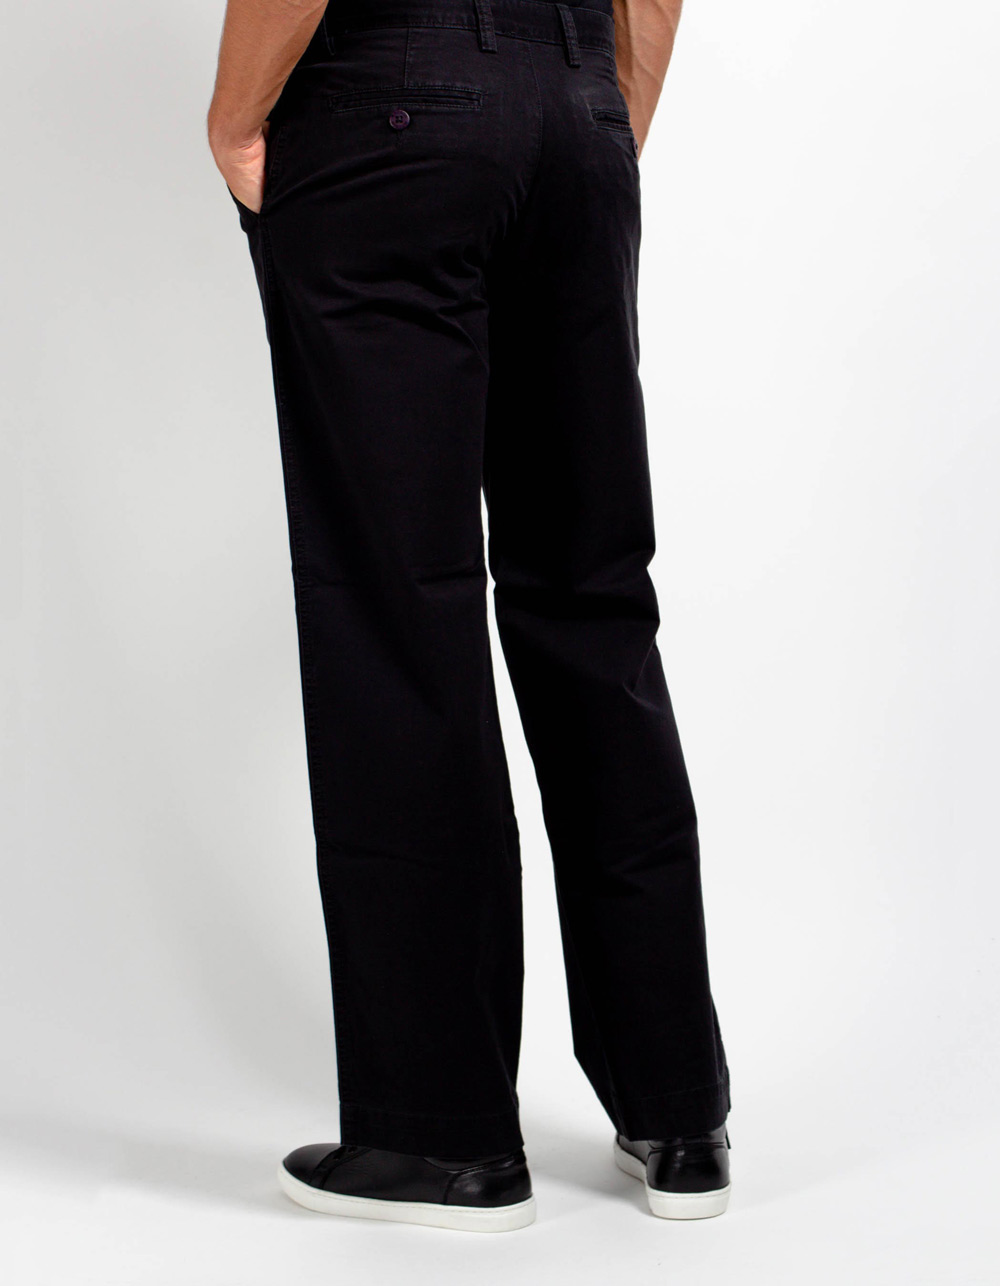 Black chinos trousers - Backside